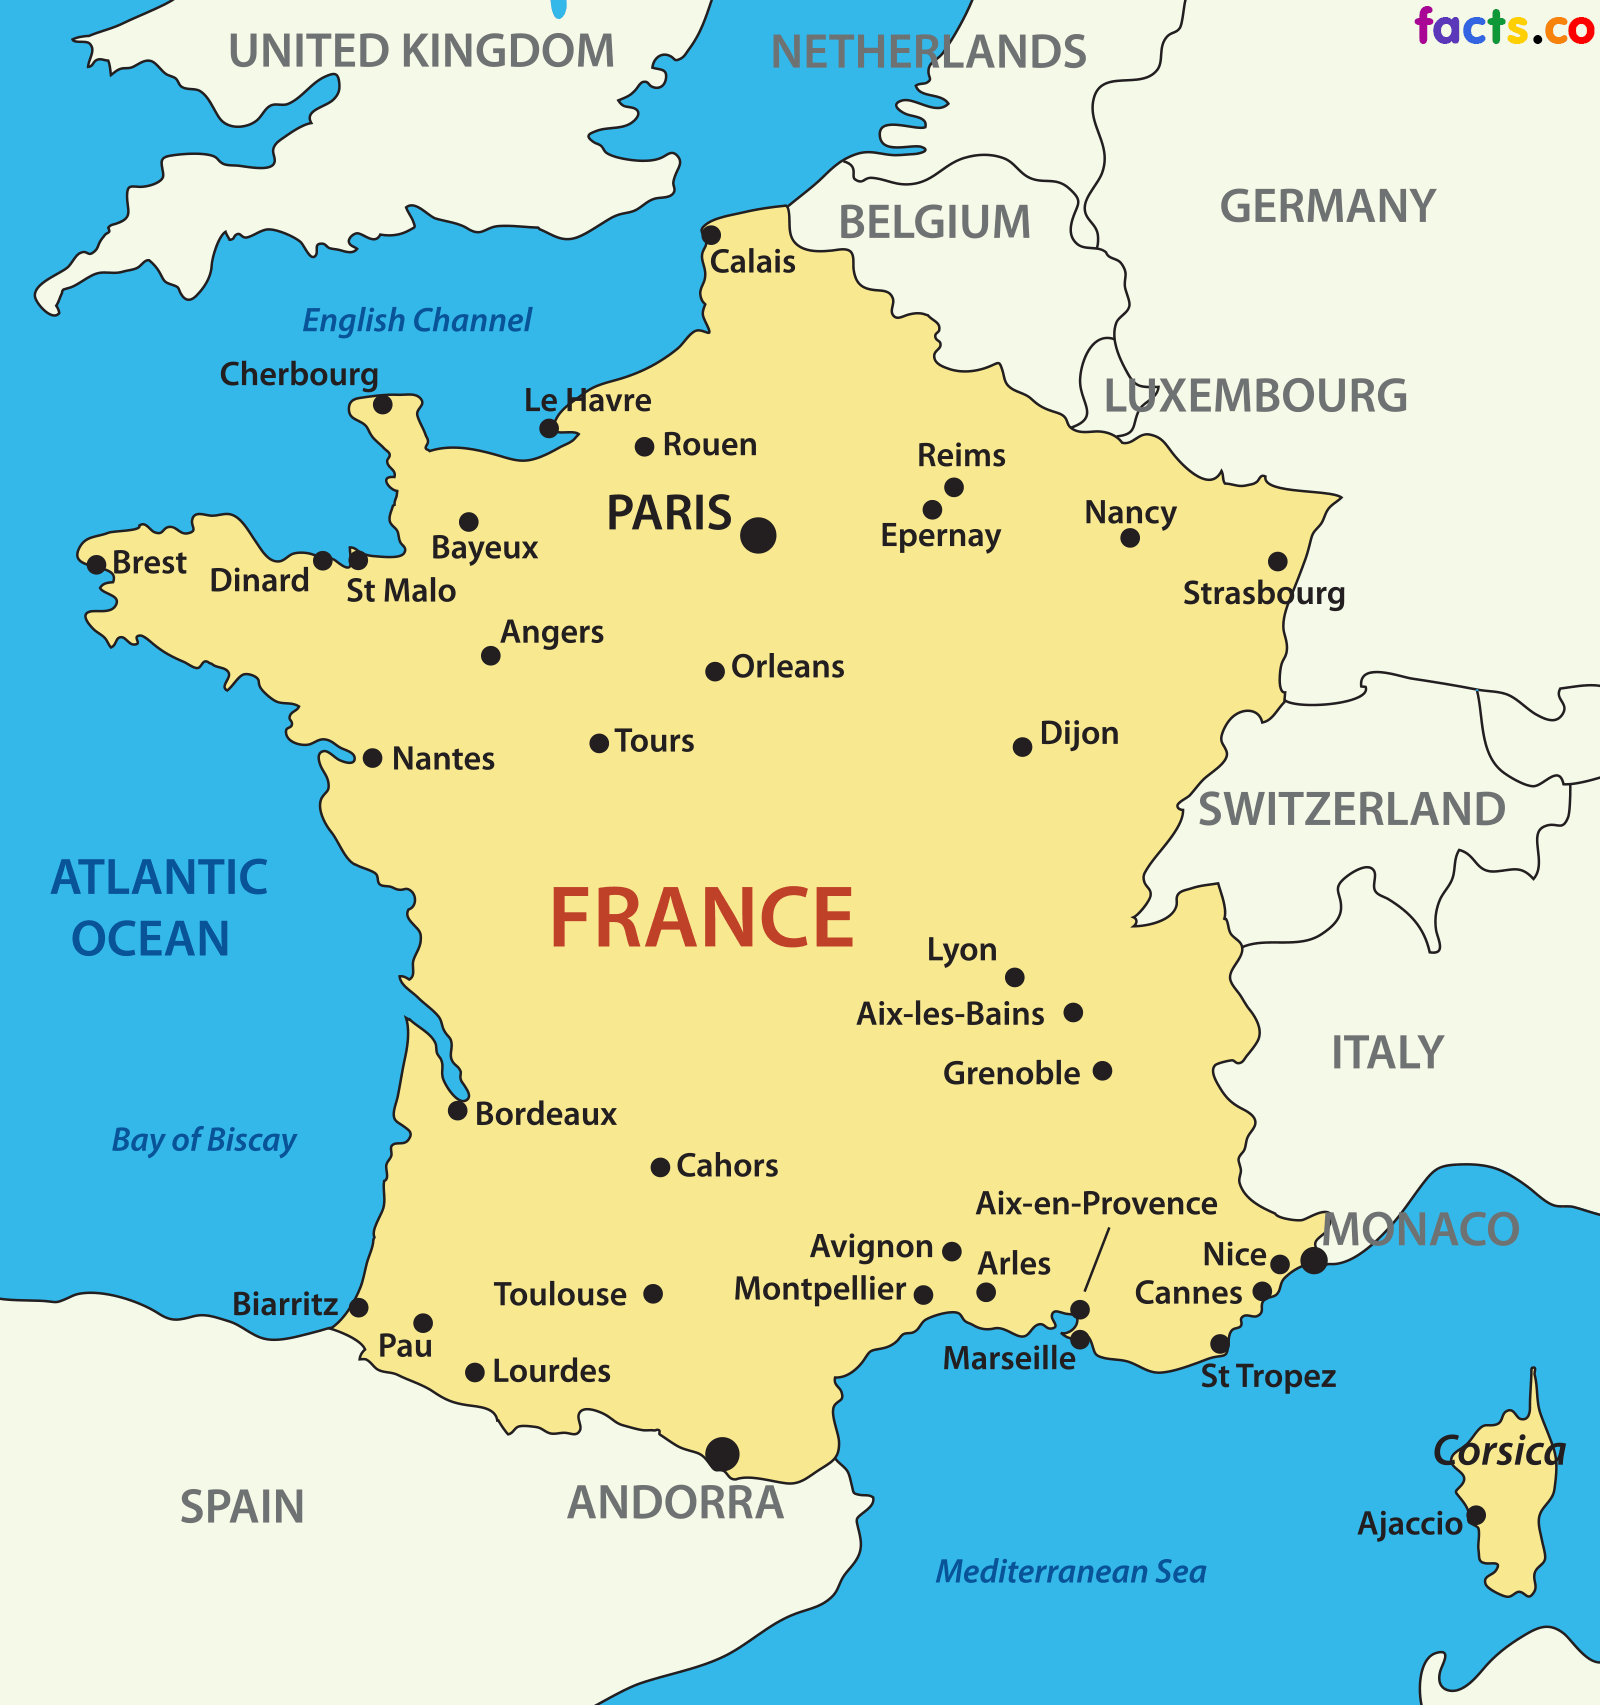 Map Of France For Children.Map Of France France France Map France For Kids Facts About France